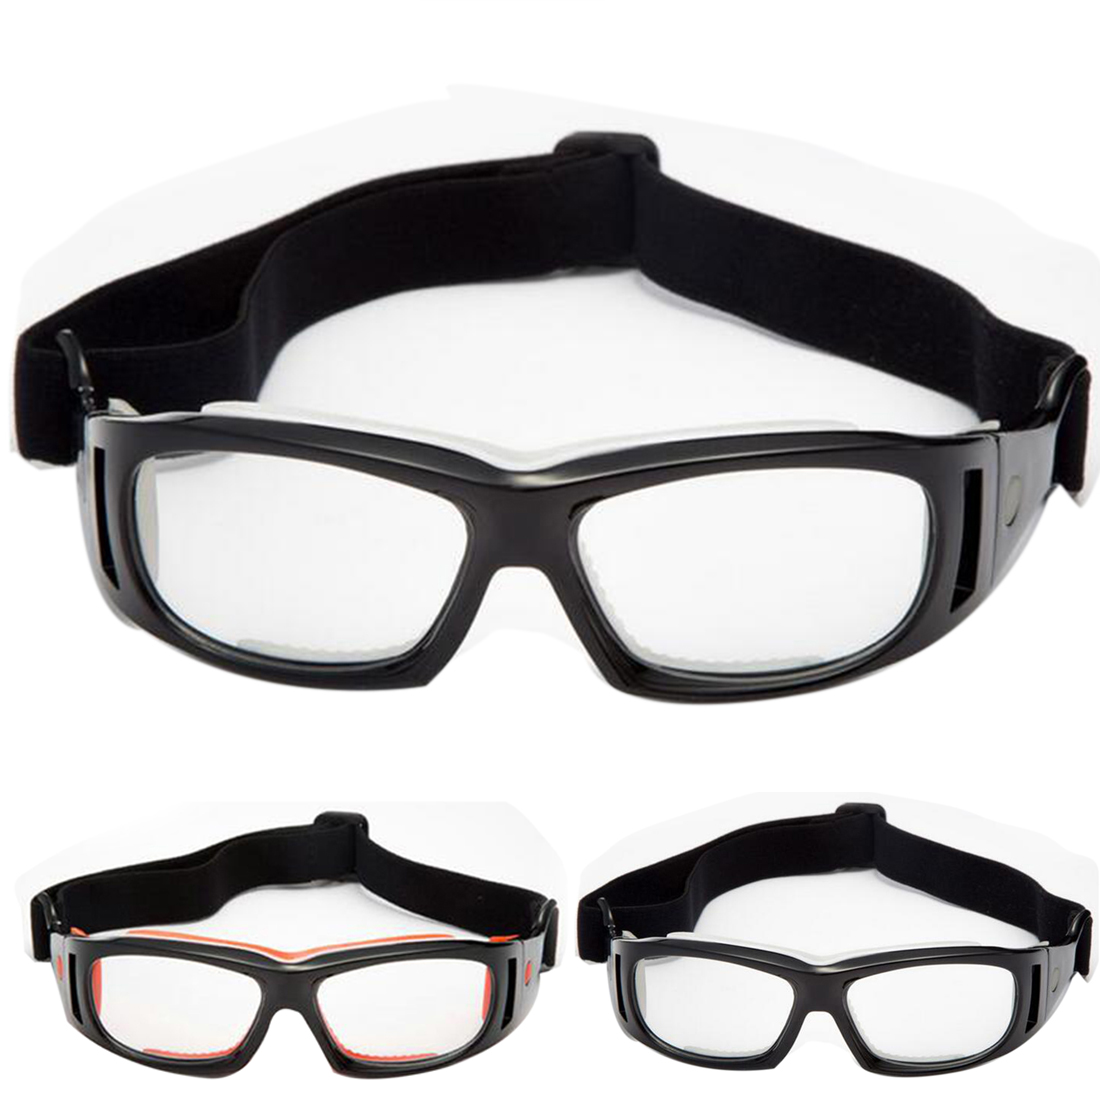 buy wholesale soccer eye protection from china